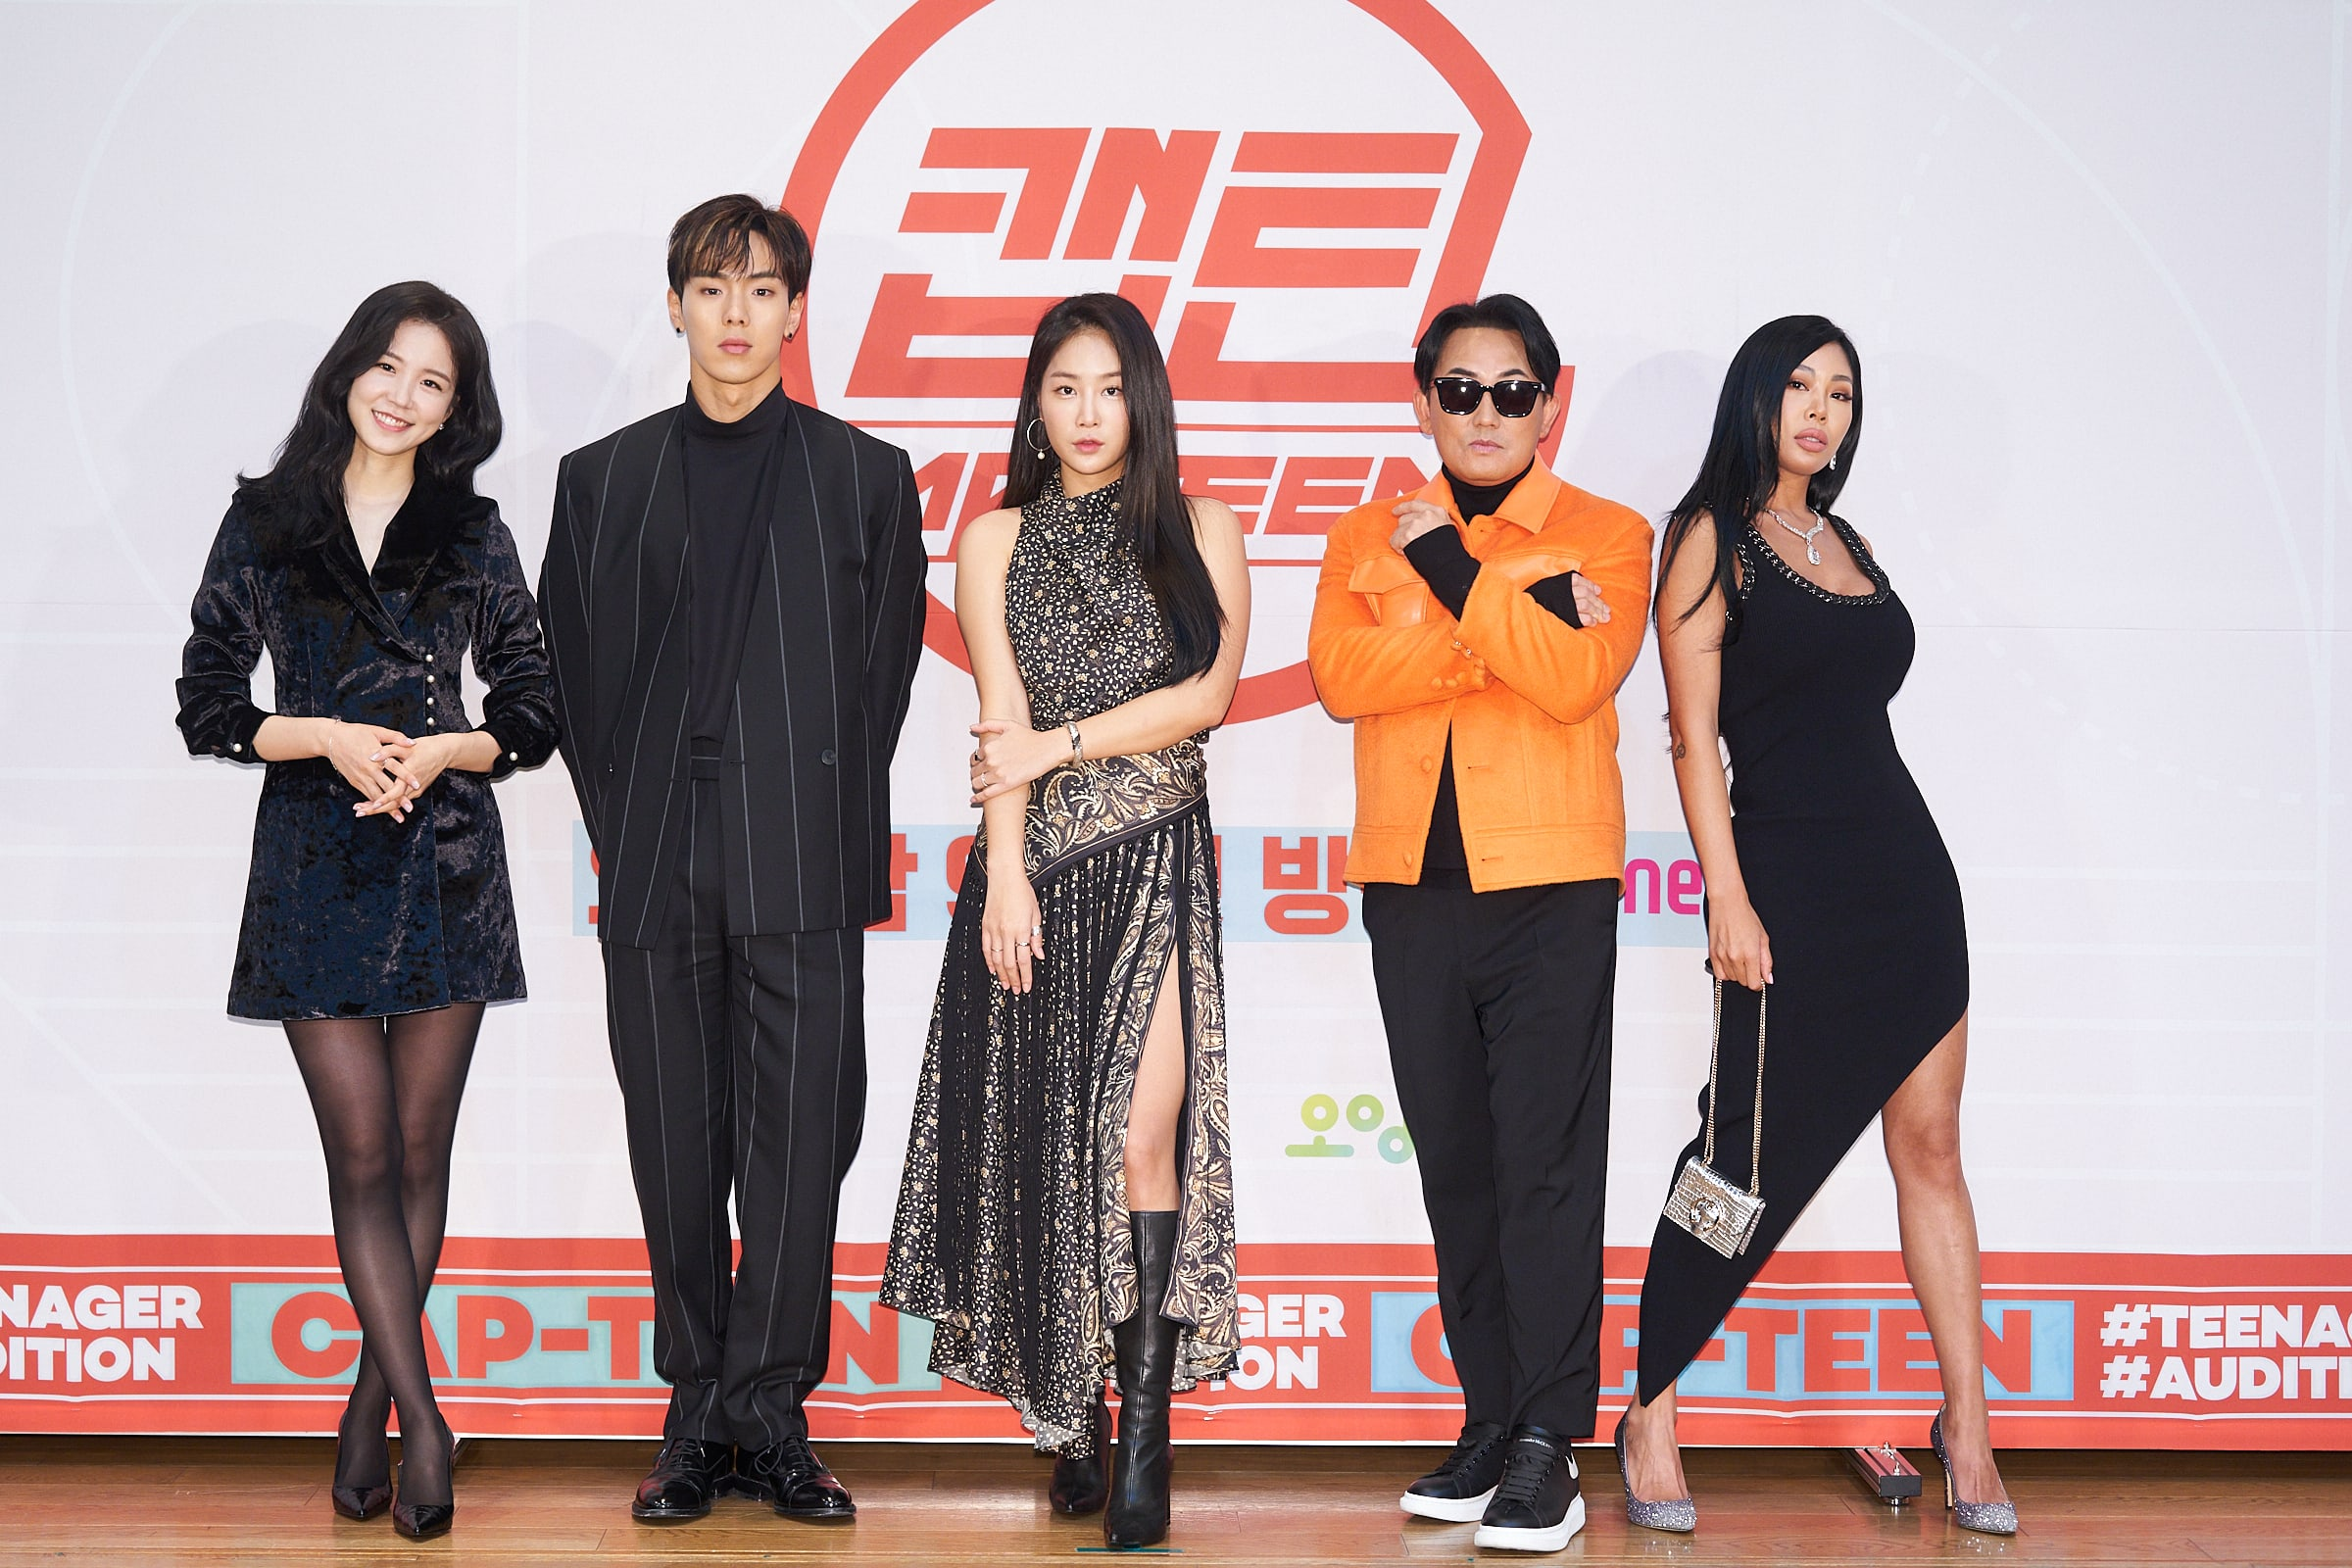 """CAP-TEEN"": Soyou, Shownu, Jessi and Lee Seung Chul discuss judging on Mnet's new show"